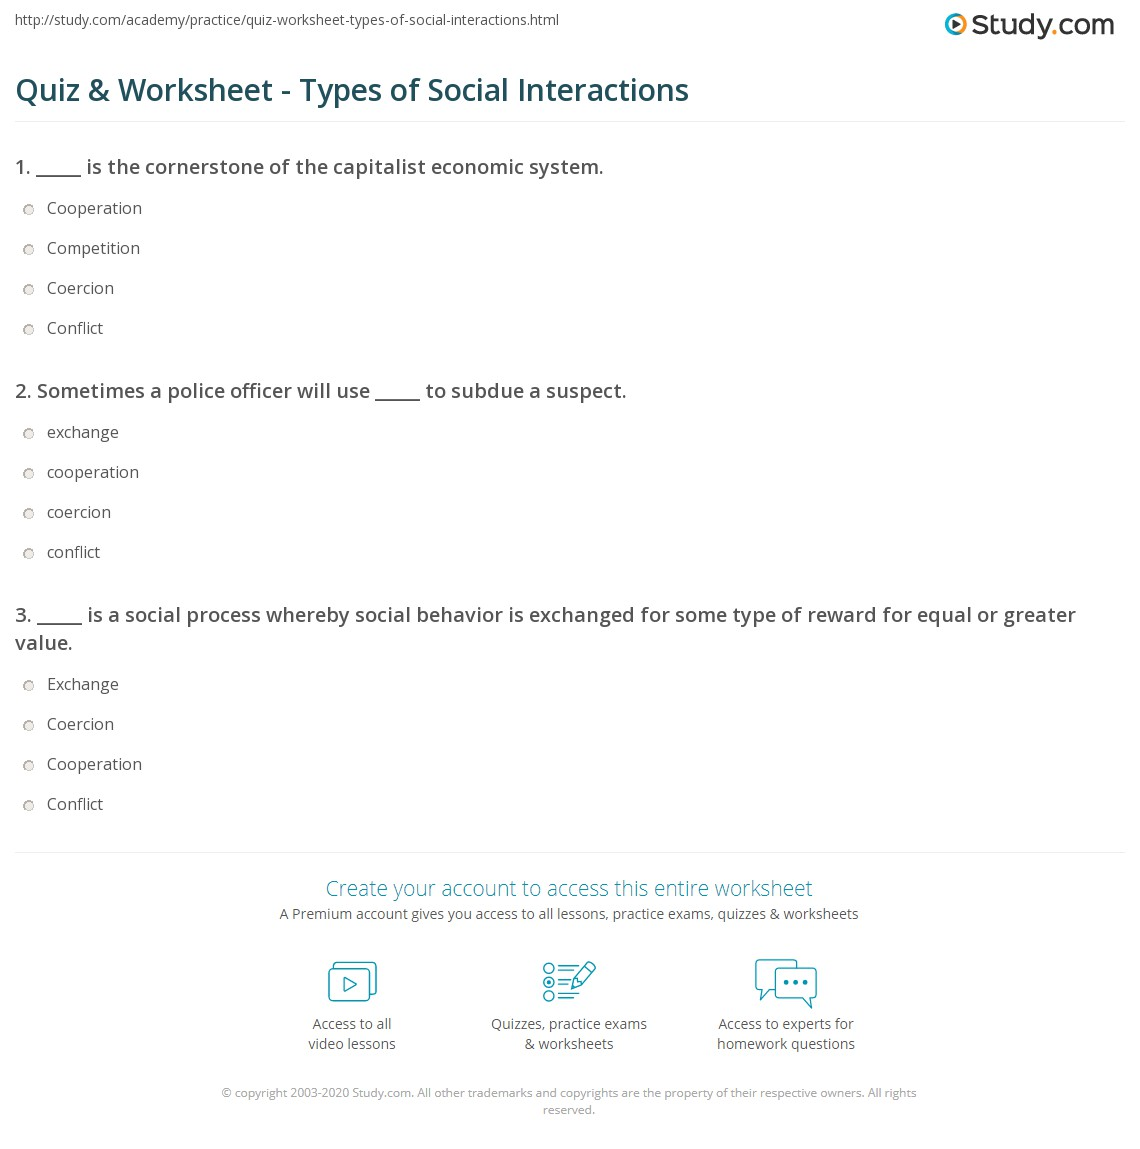 Quiz & Worksheet - Types of Social Interactions | Study.com